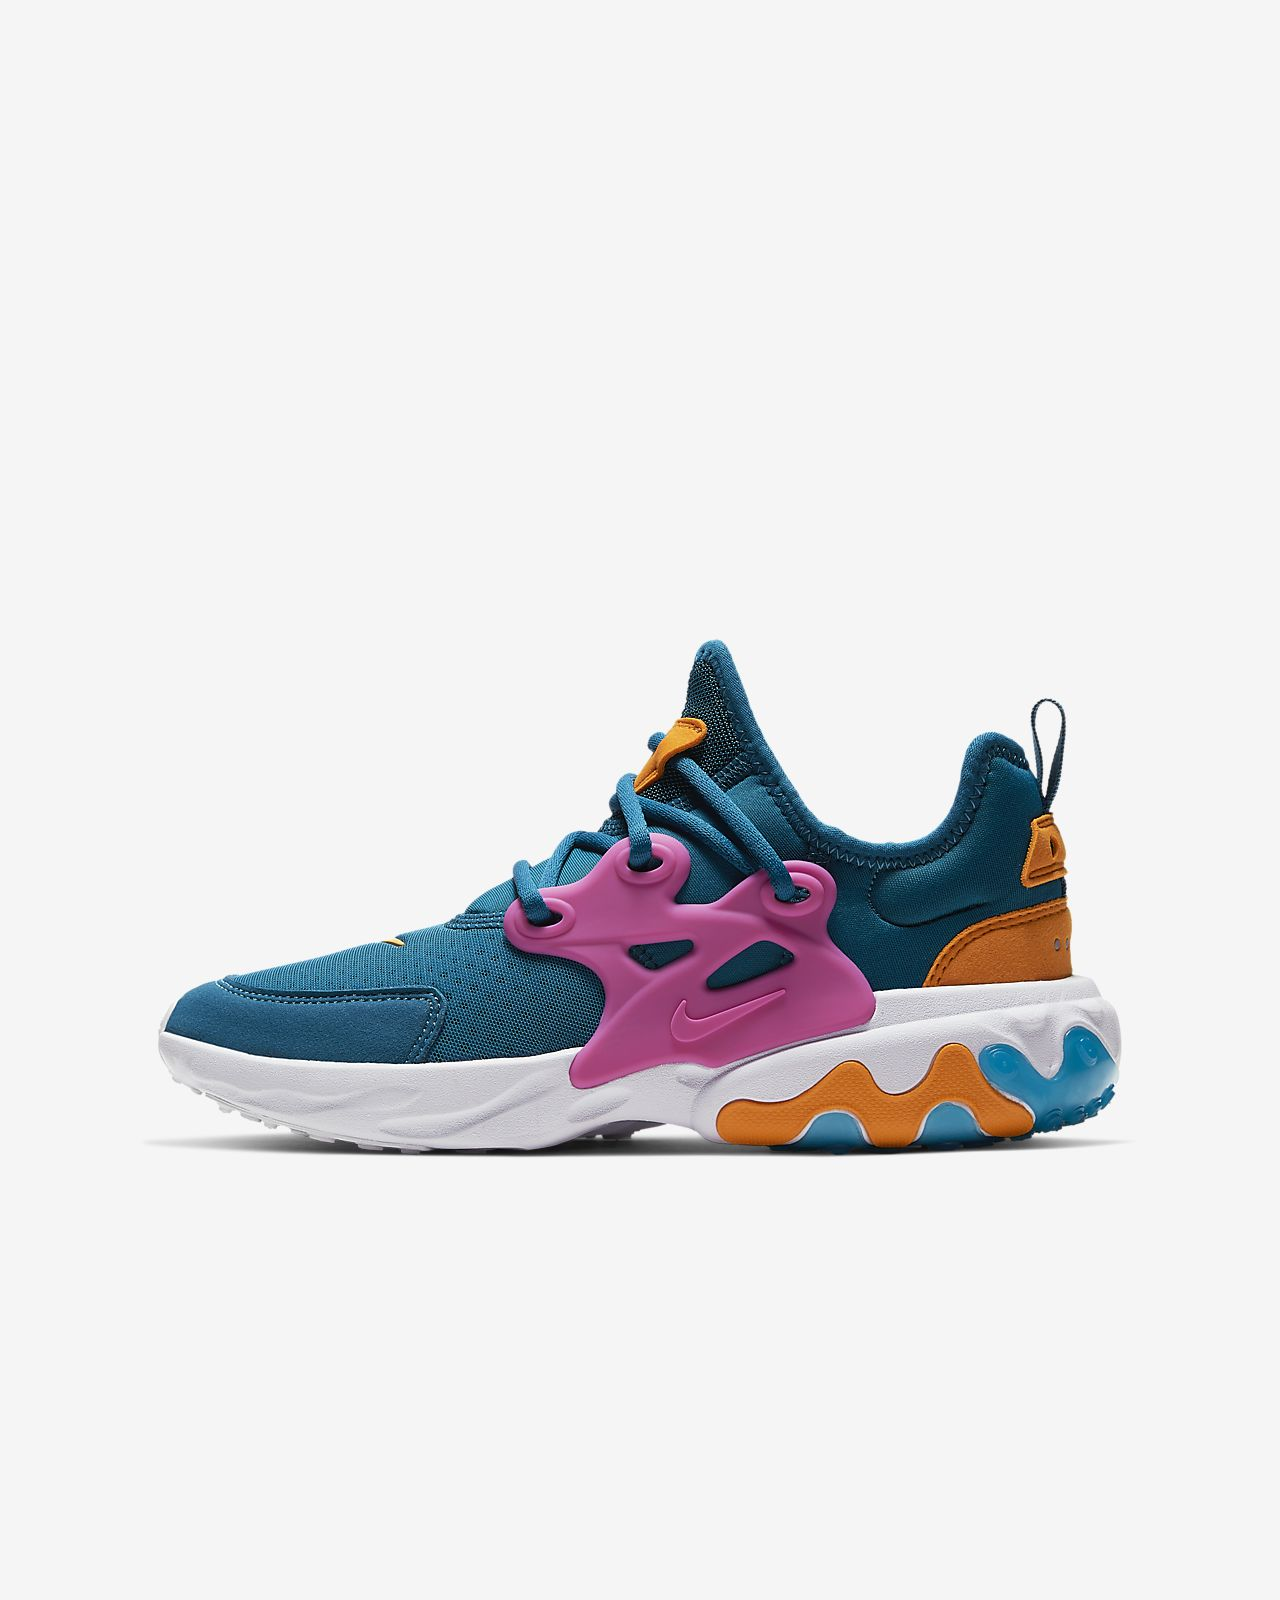 Nike React Presto Big Kids' Shoe